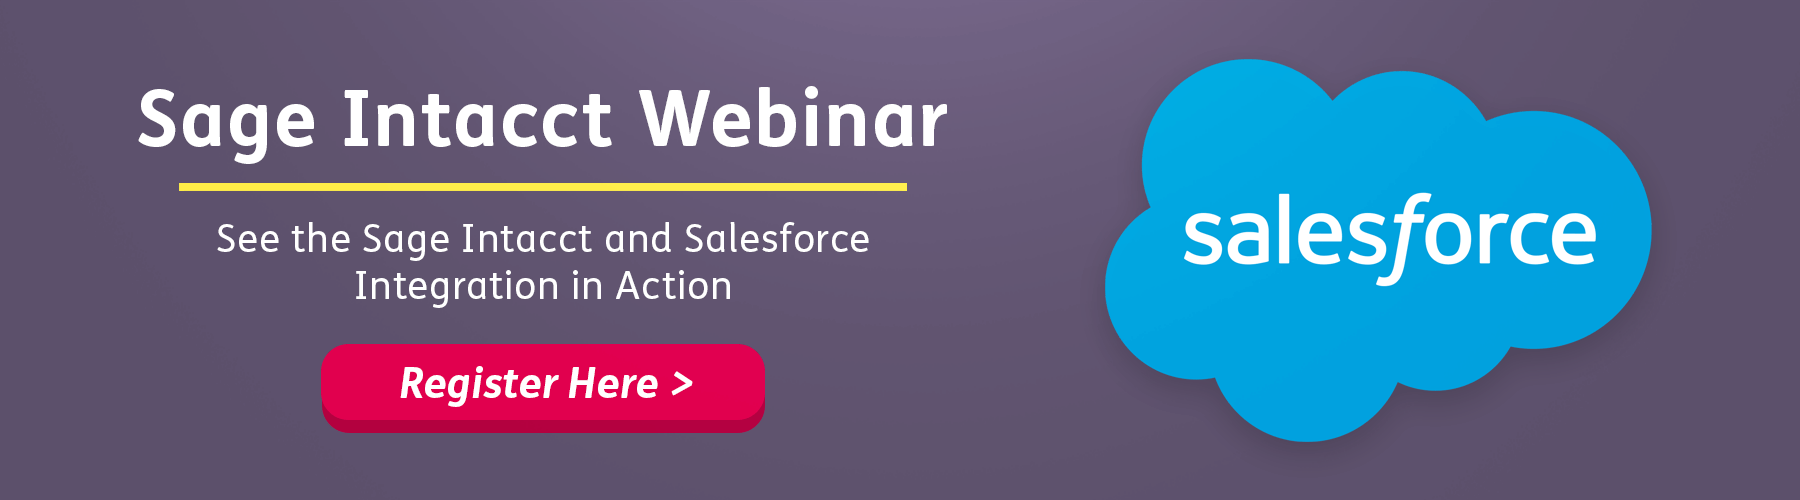 Sage Intacct & Salesforce Integration Webinar